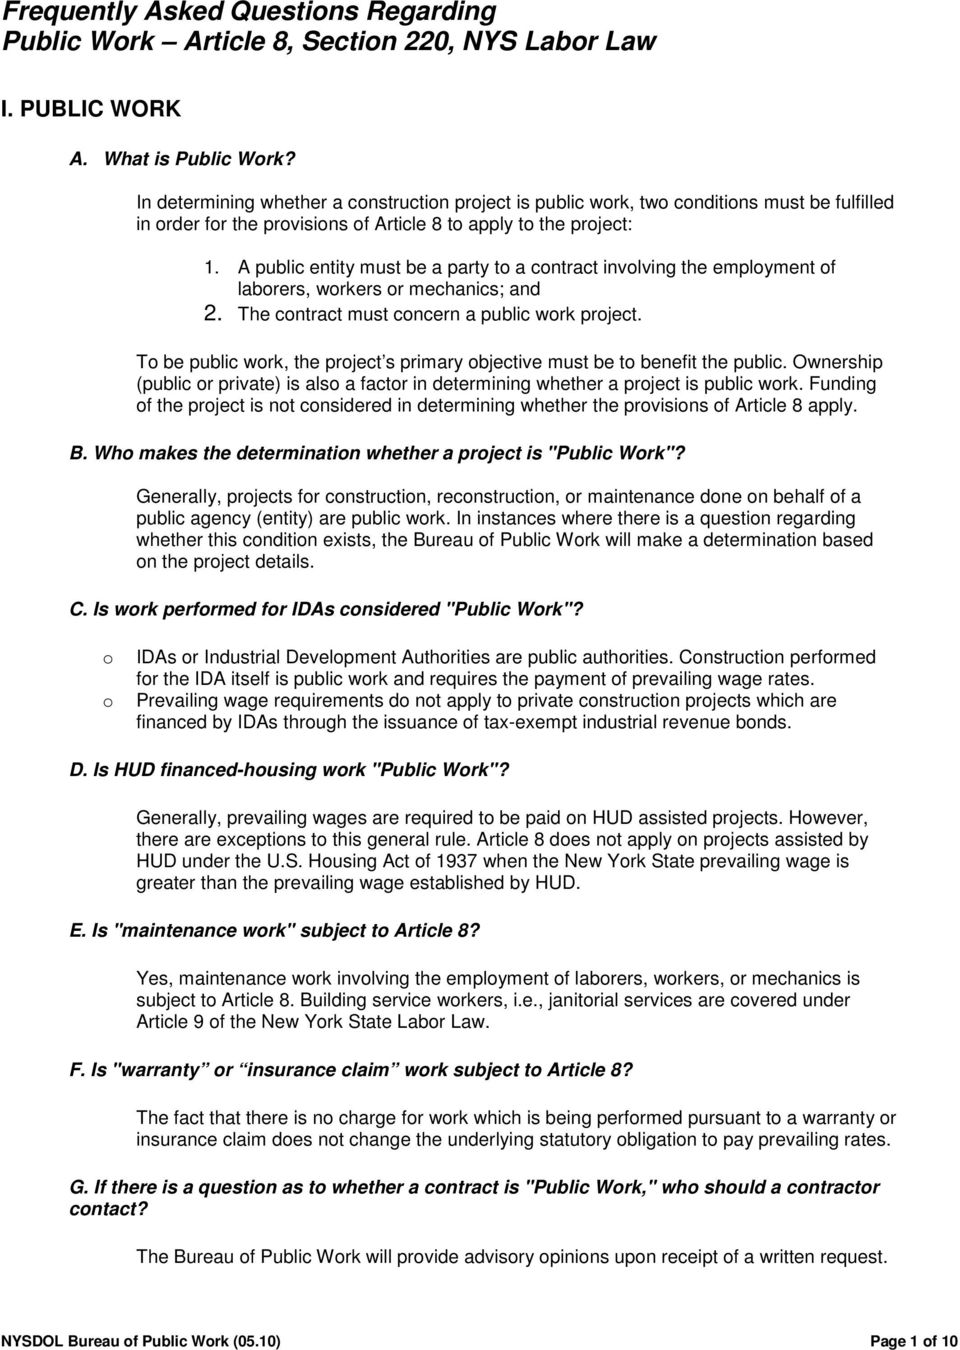 Frequently Asked Questions Regarding Public Work Article 8